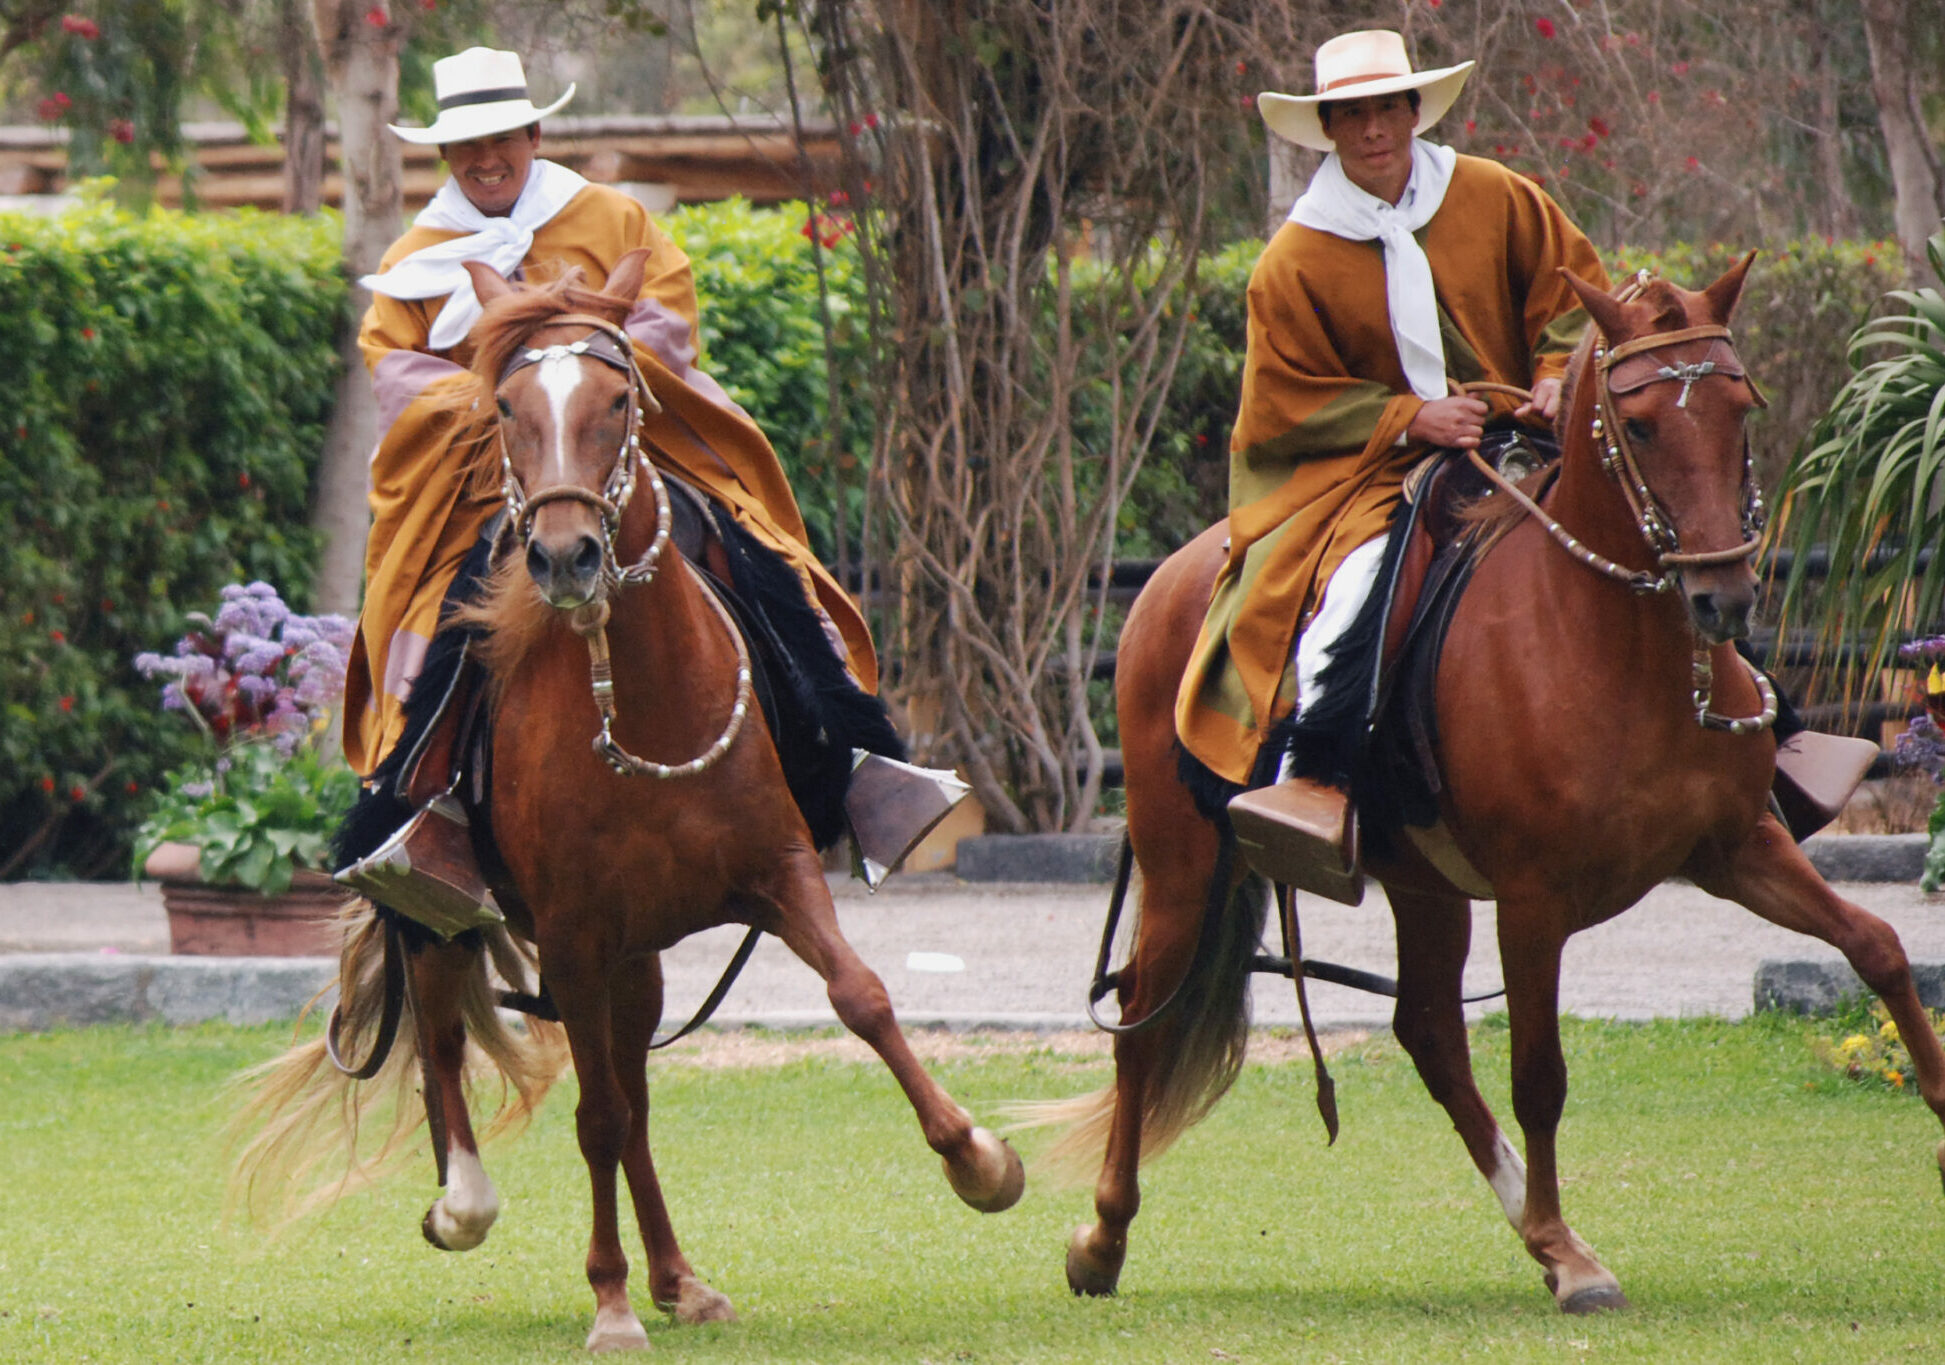 Horse Breed: Peruvian Paso - photo by Harvey Barrison on Wikimedia Commons - Globetrotting horse riding holidays